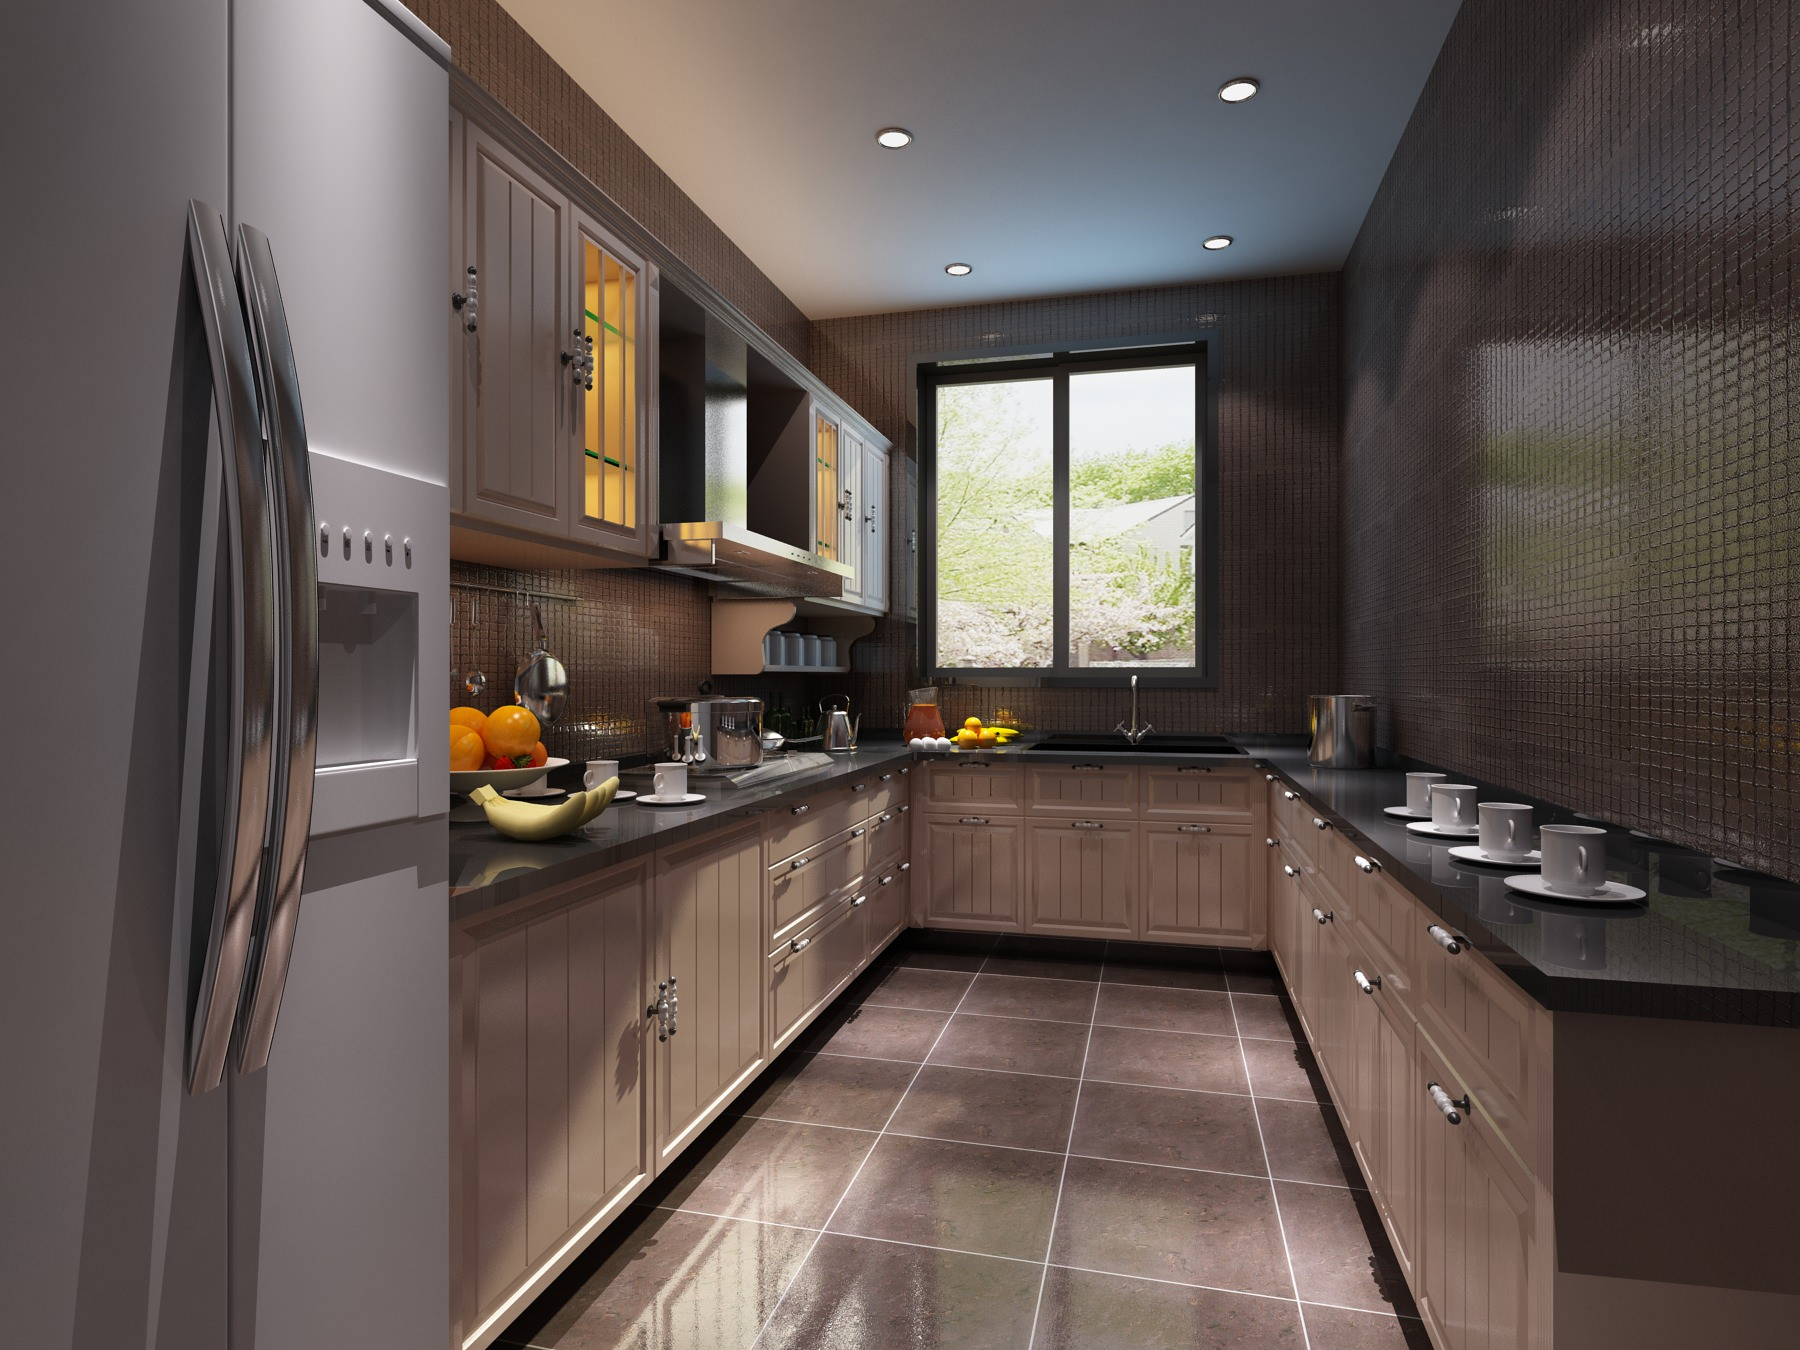 Modern Kitchen Interior With Refrigerator 3d Model Max